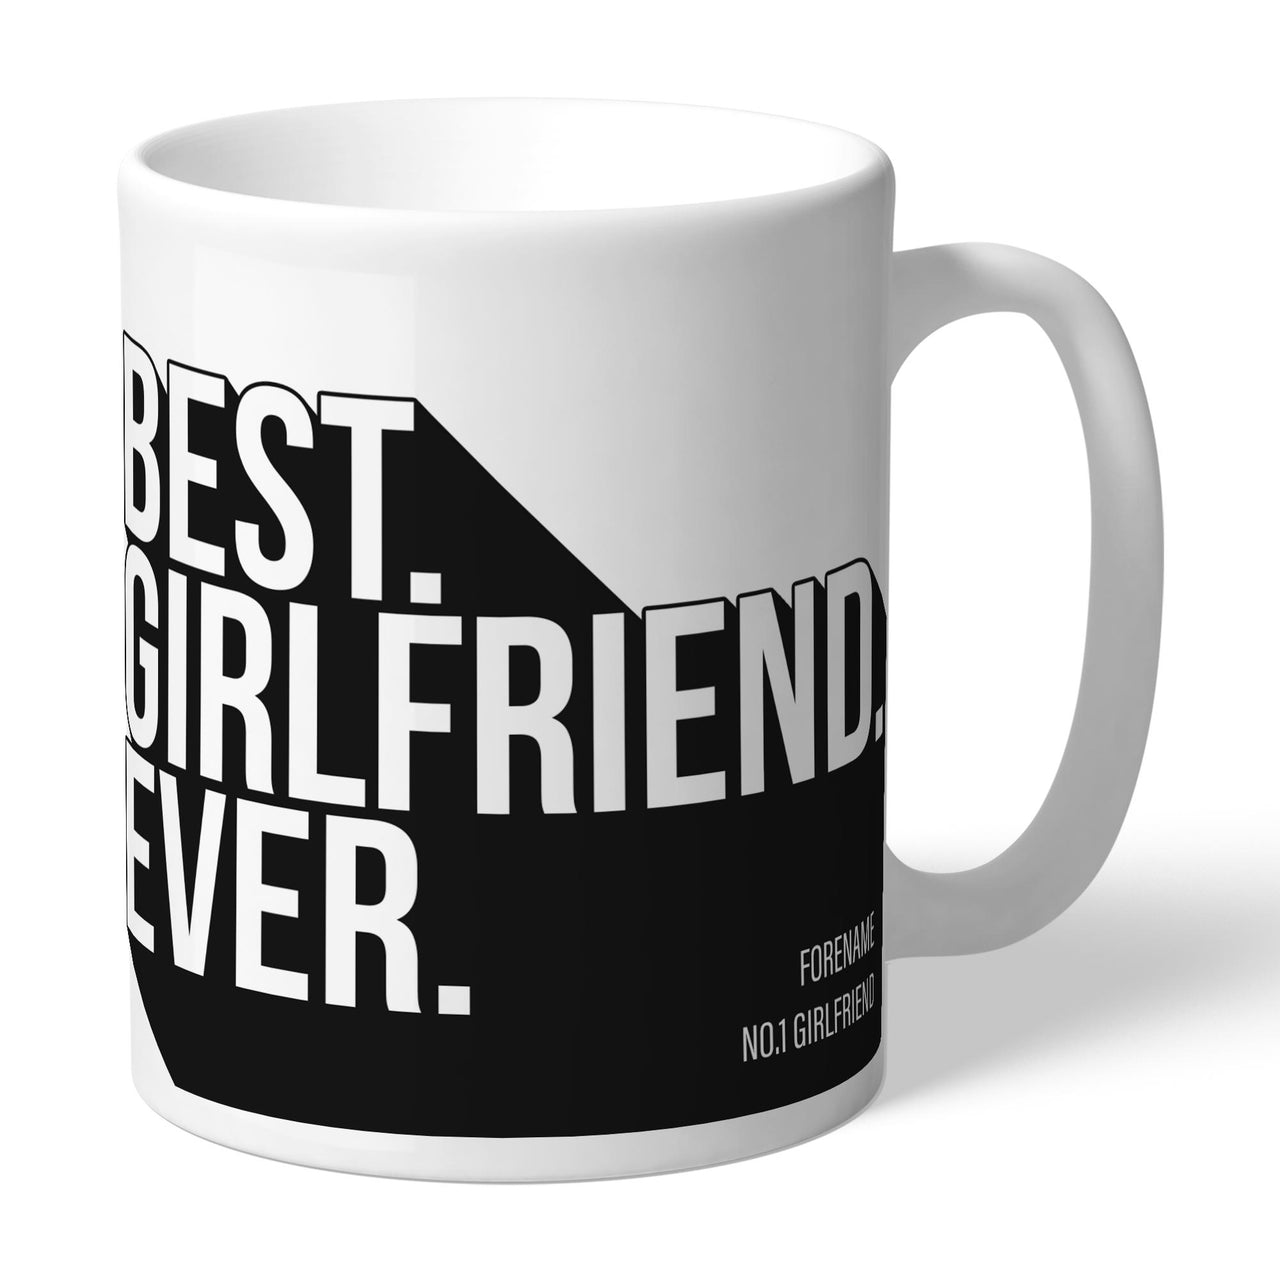 Newcastle United Best Girlfriend Ever Mugs, Gifts